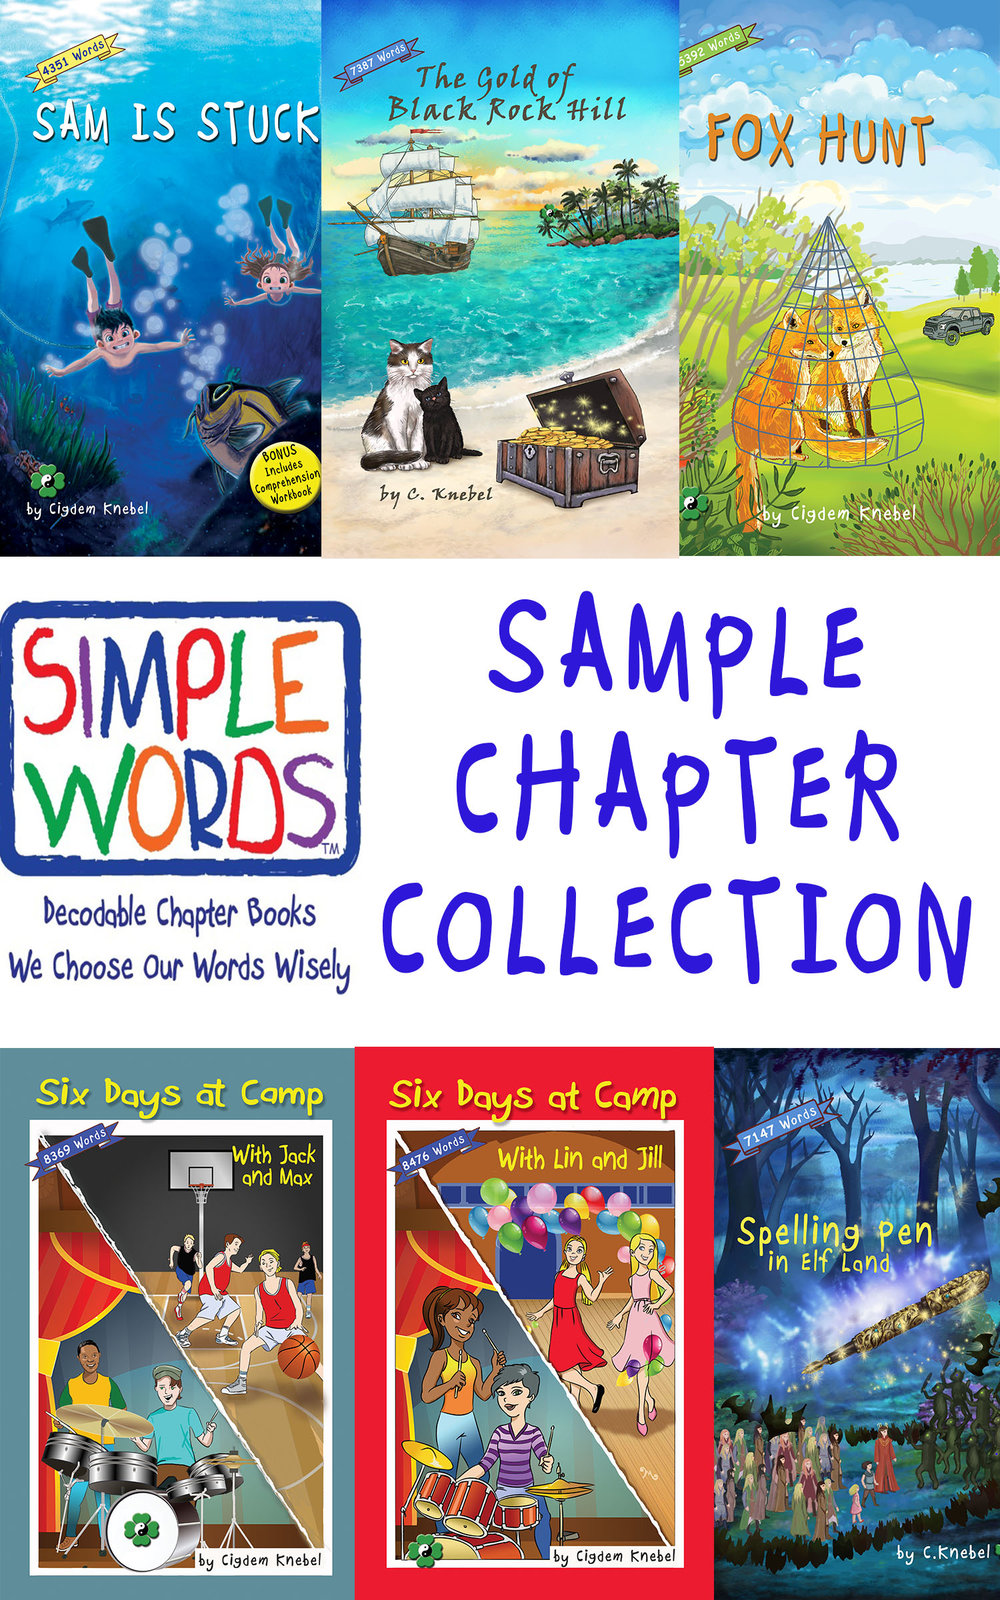 Sample Chapter CollectionCover.jpg